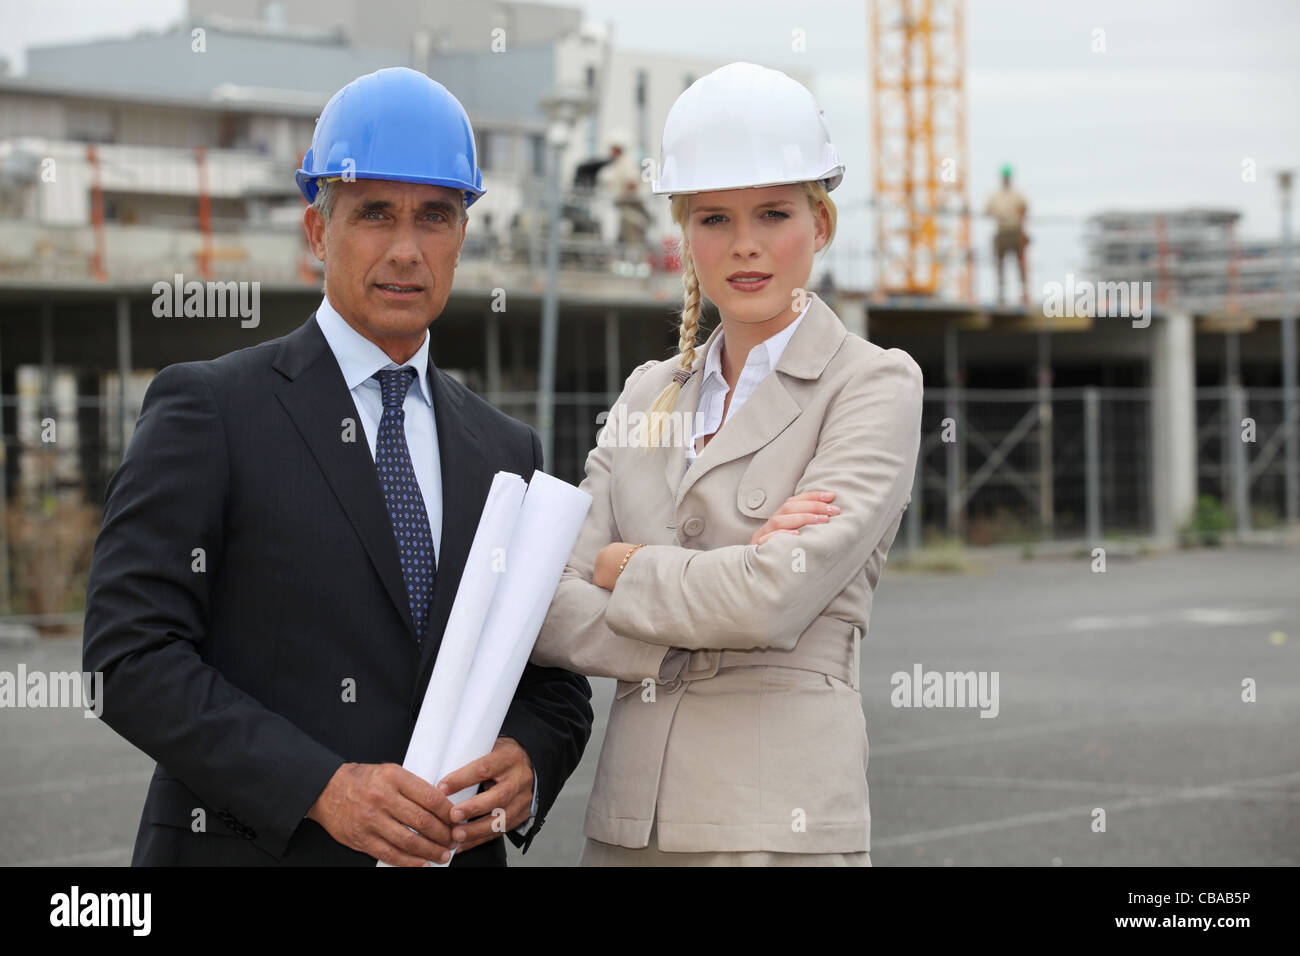 portrait of two contractors - Stock Image